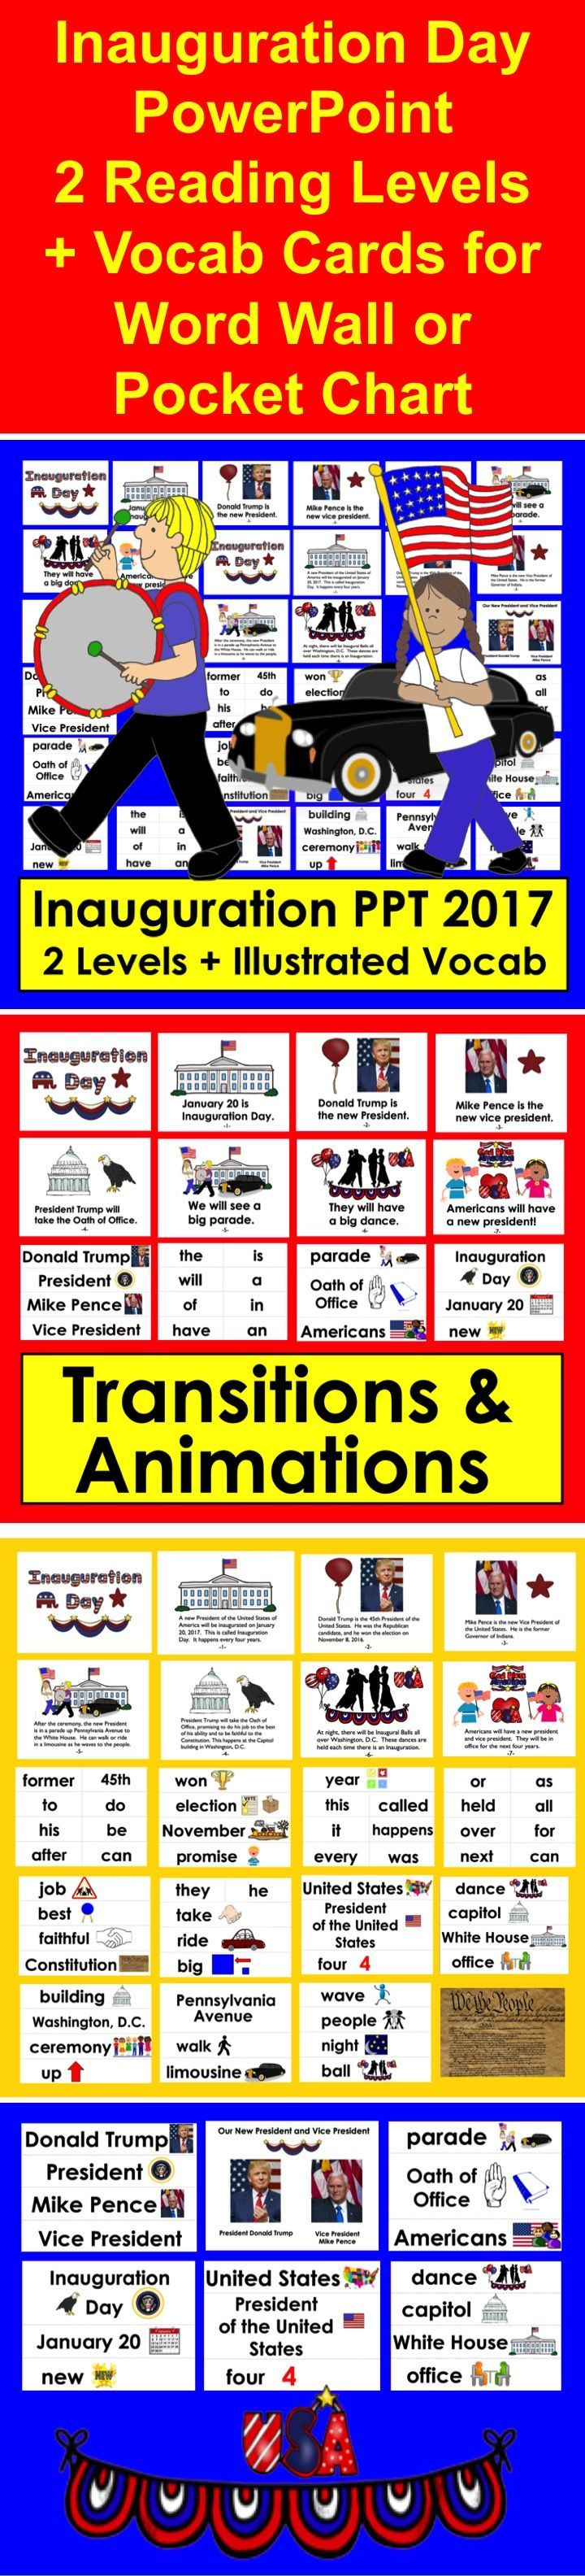 Inauguration Day PowerPoint for Kindergarten and First Grade - 2 Levels + Illustrated Vocabulary Slides